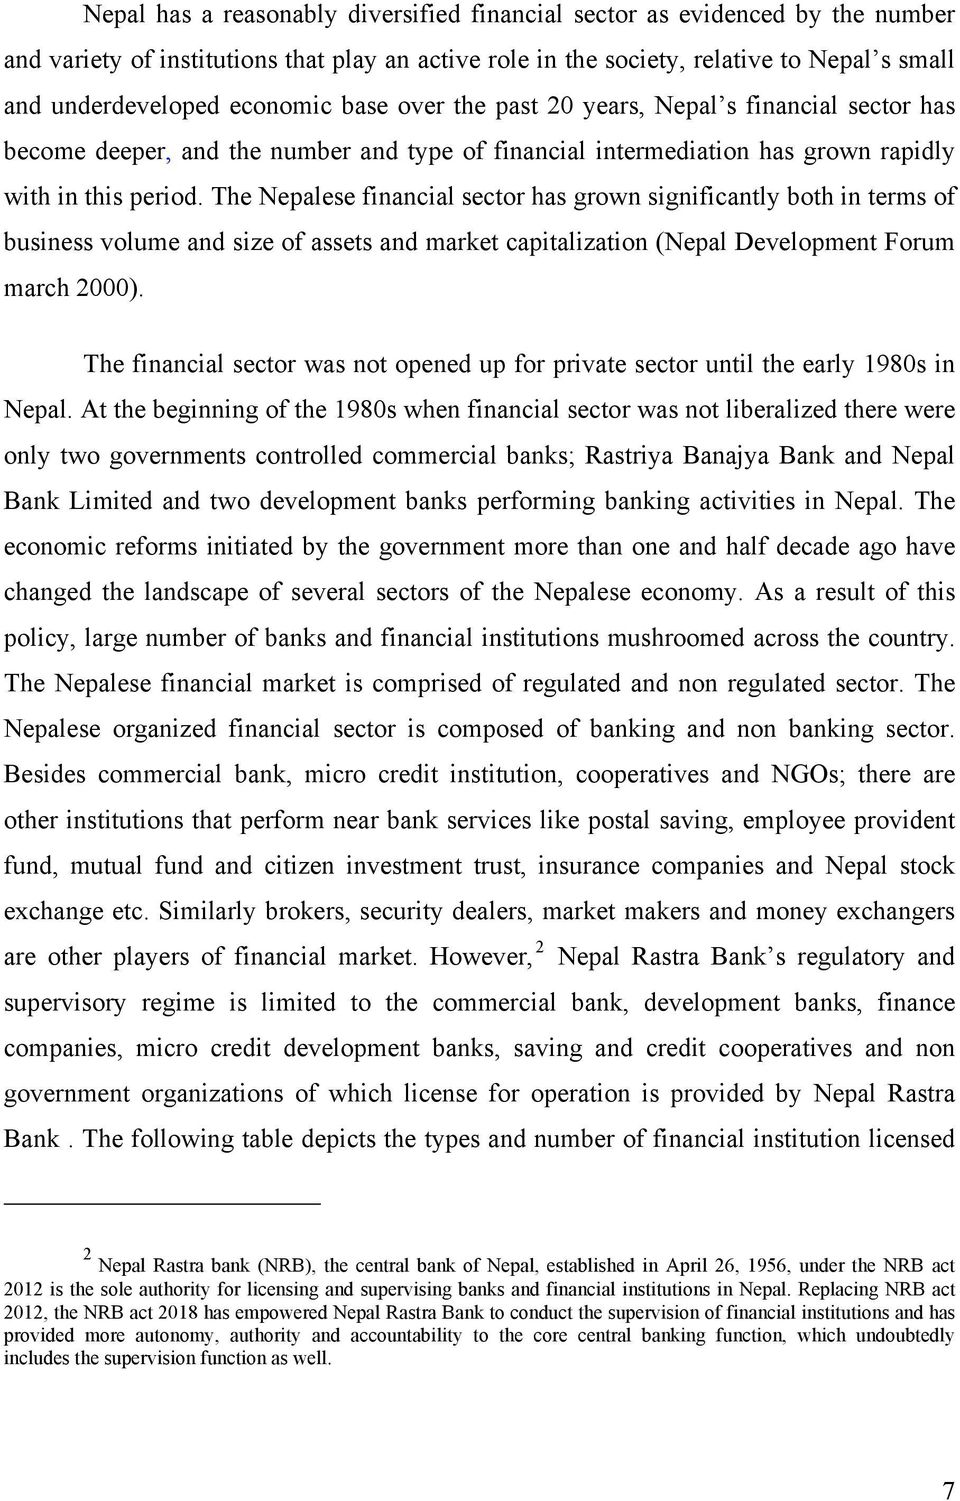 The Nepalese financial sector has grown significantly both in terms of business volume and size of assets and market capitalization (Nepal Development Forum march 2000).